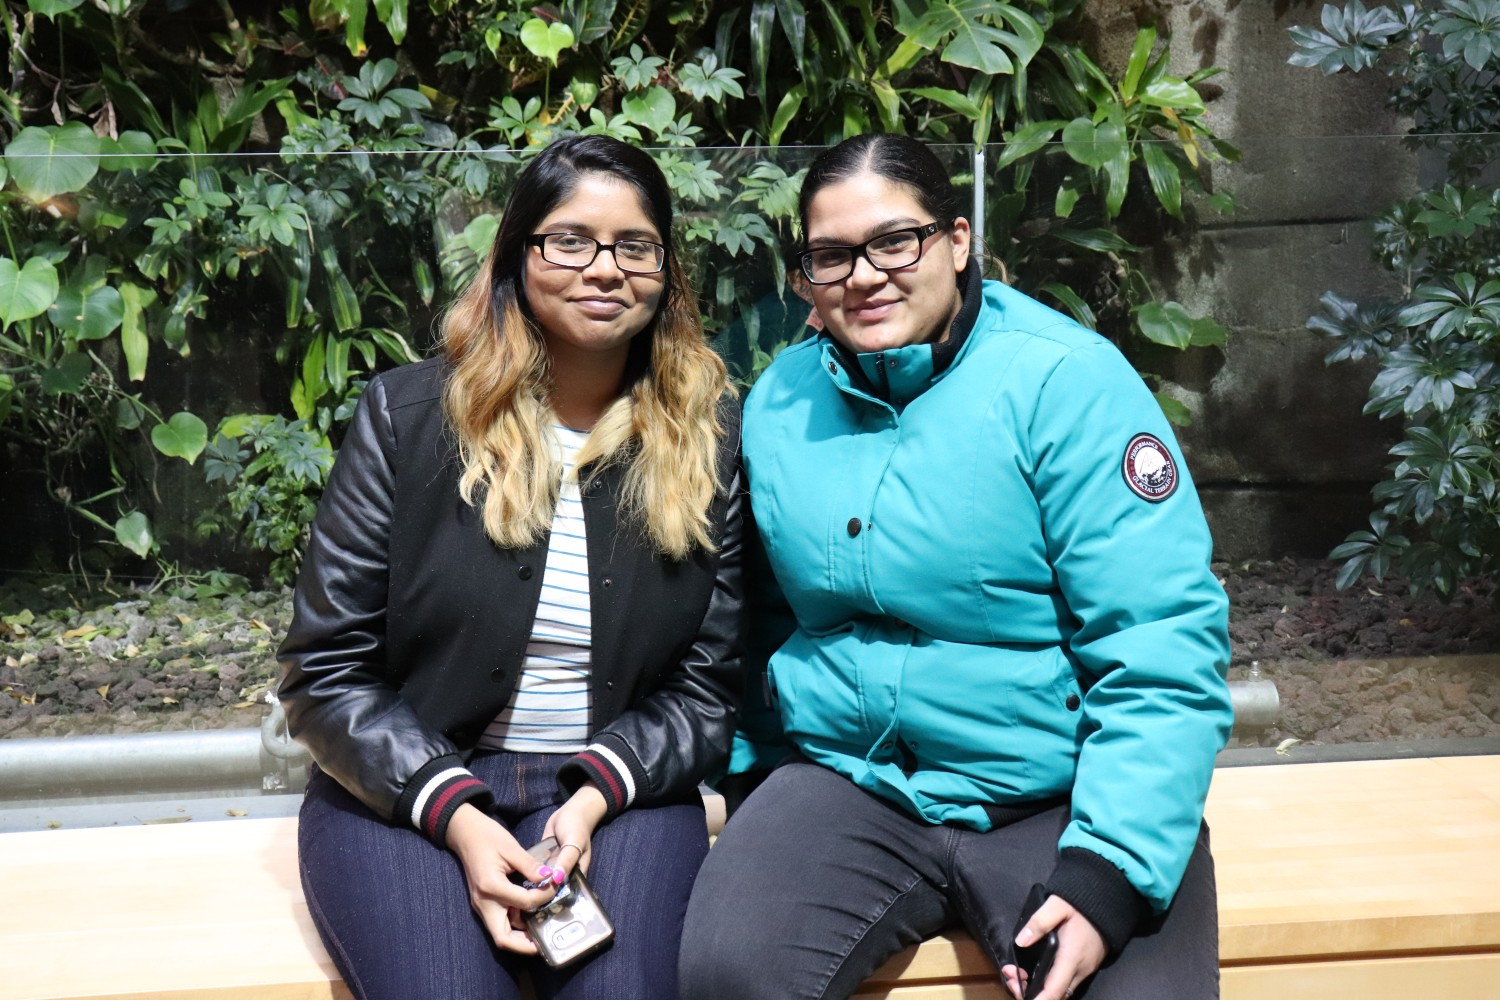 Students Alisha Harinarain and Komal Singh sit by the plant wall in the University of Guelph-Humber.